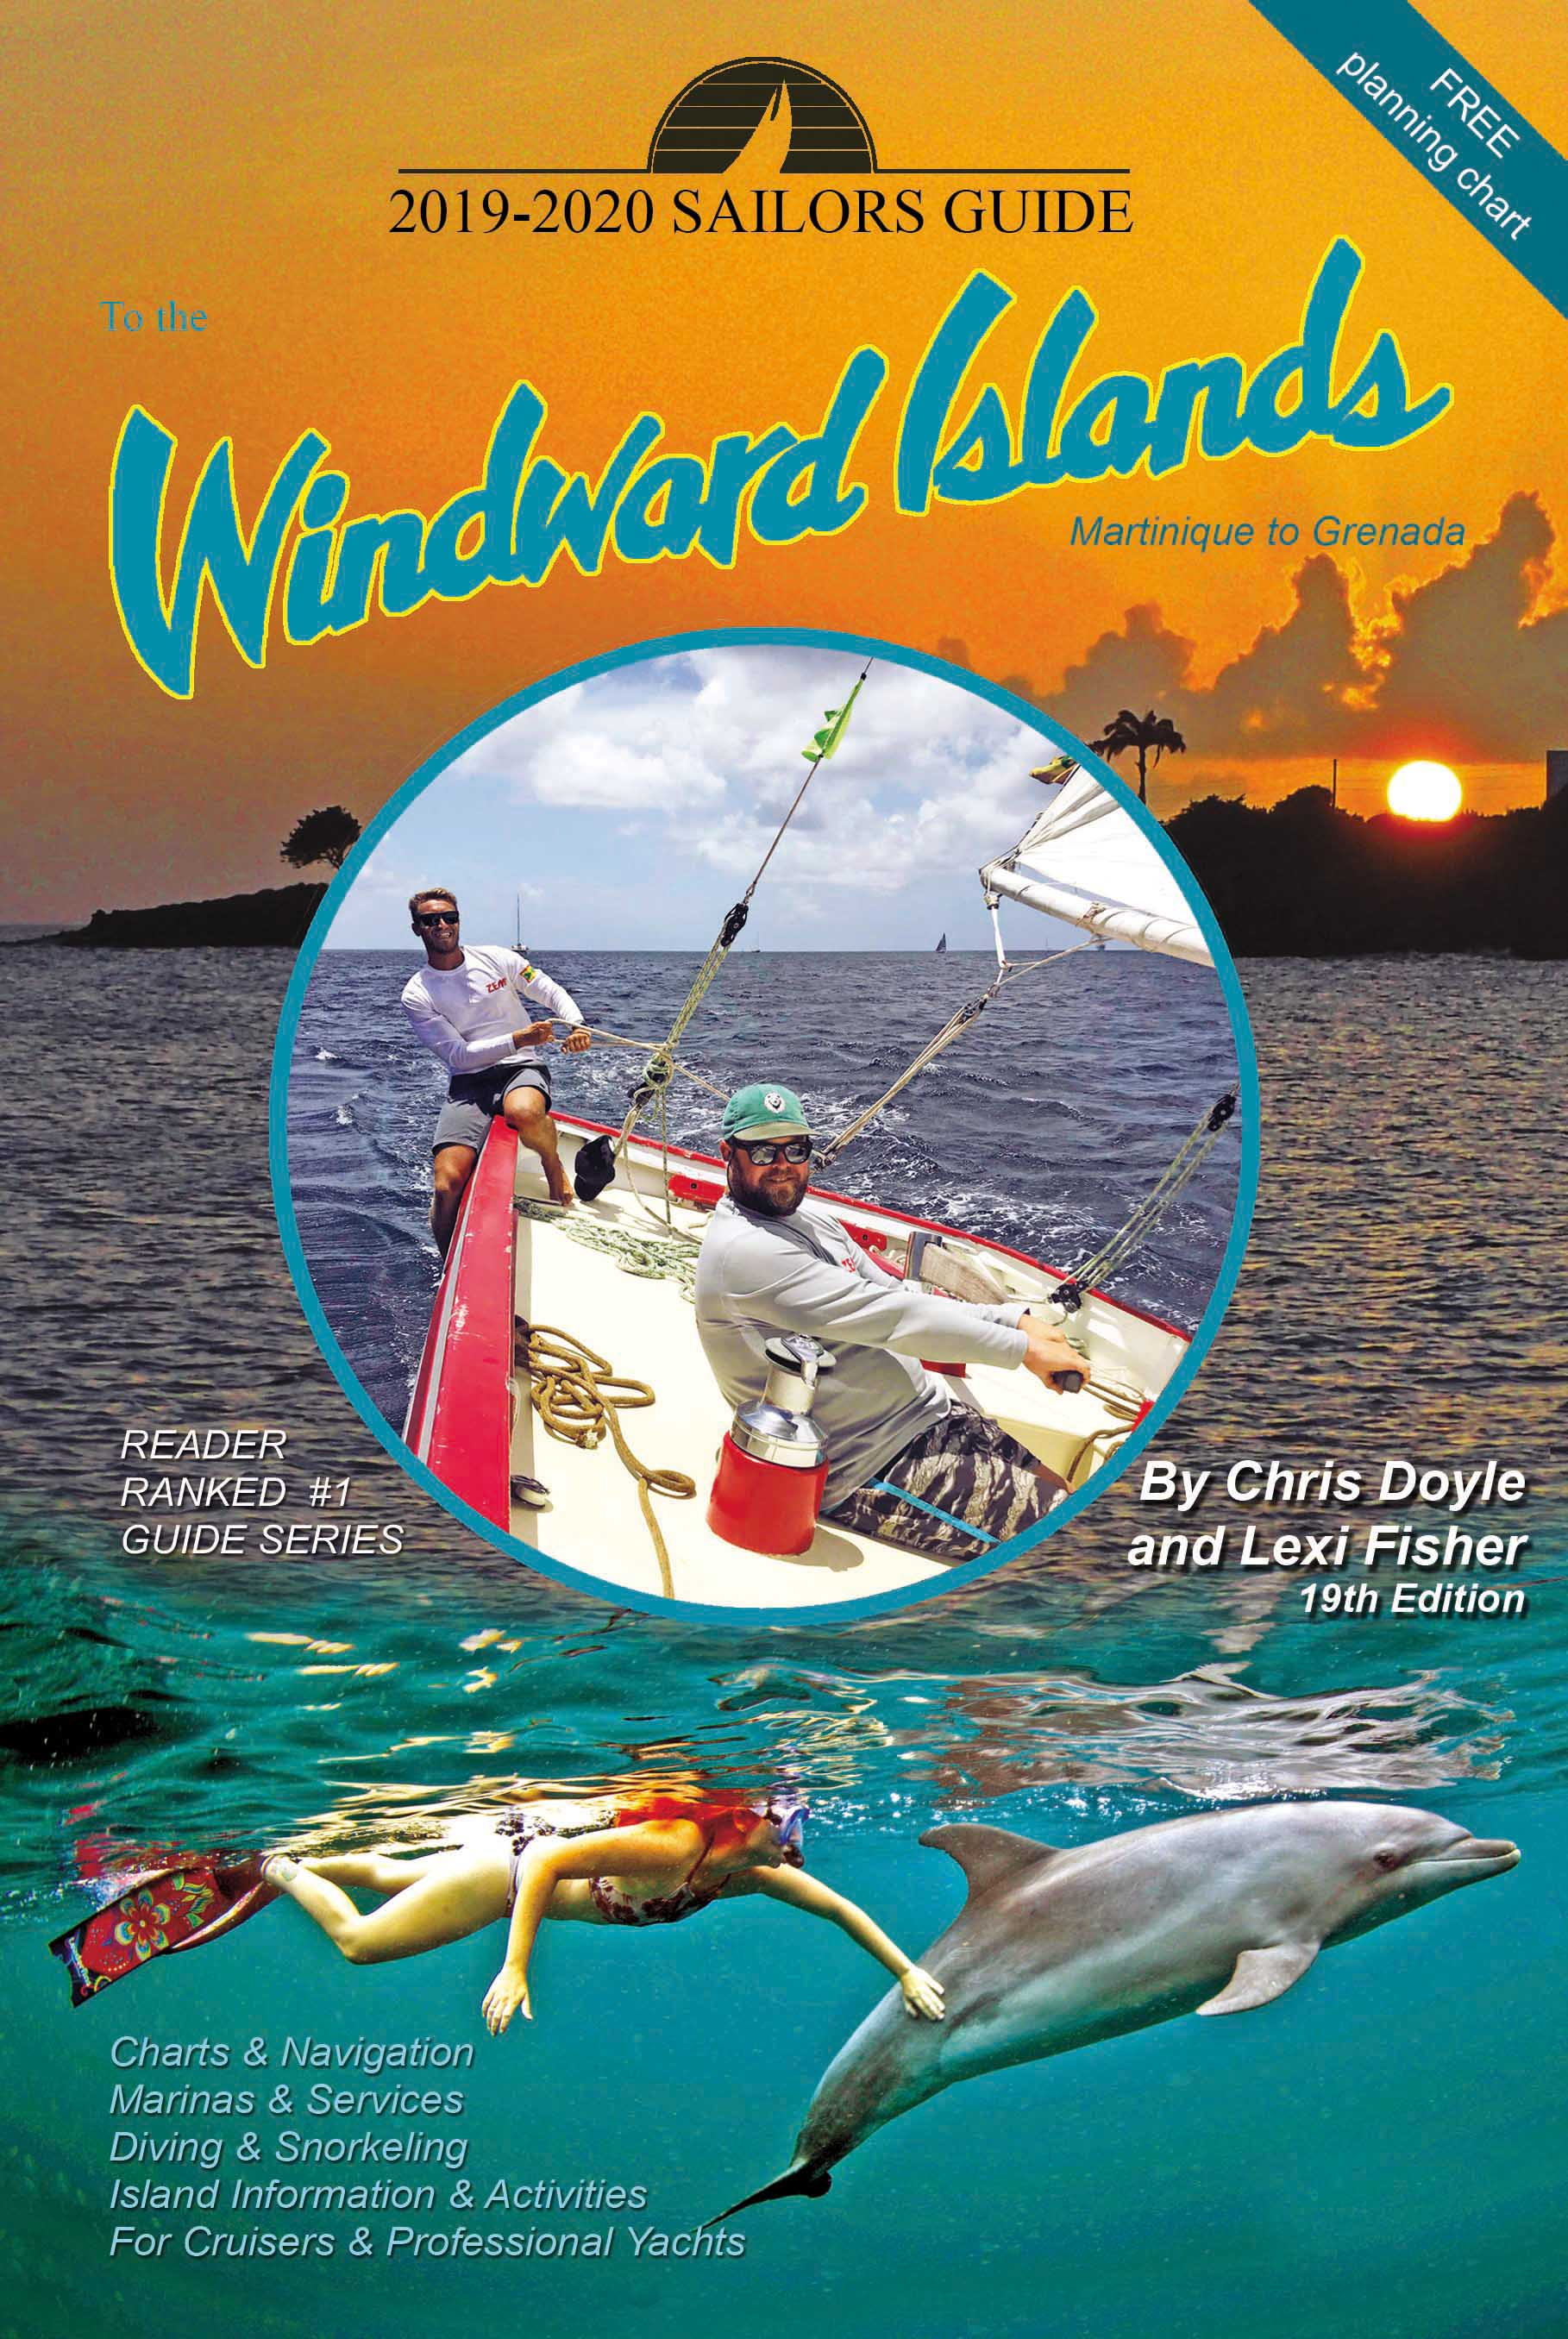 Sailor's Guide to the Windward Islands, 2019-2020